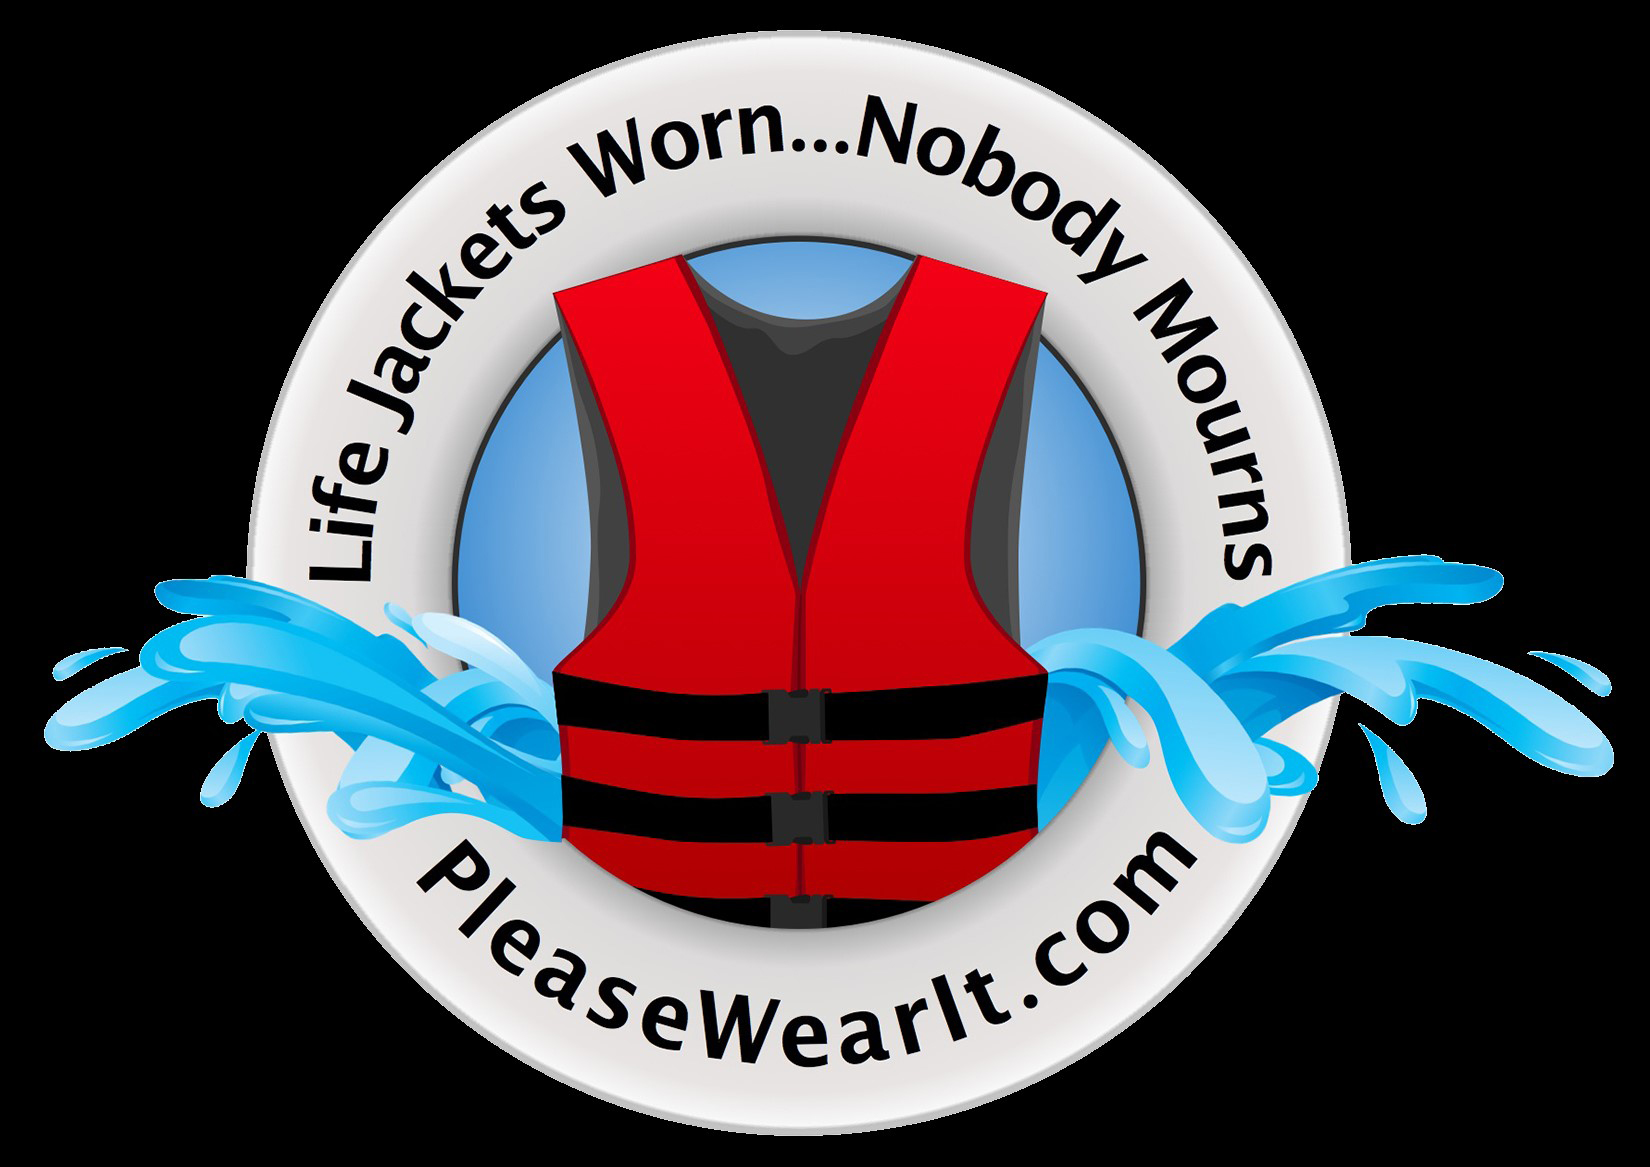 Wear Your Life Jackets